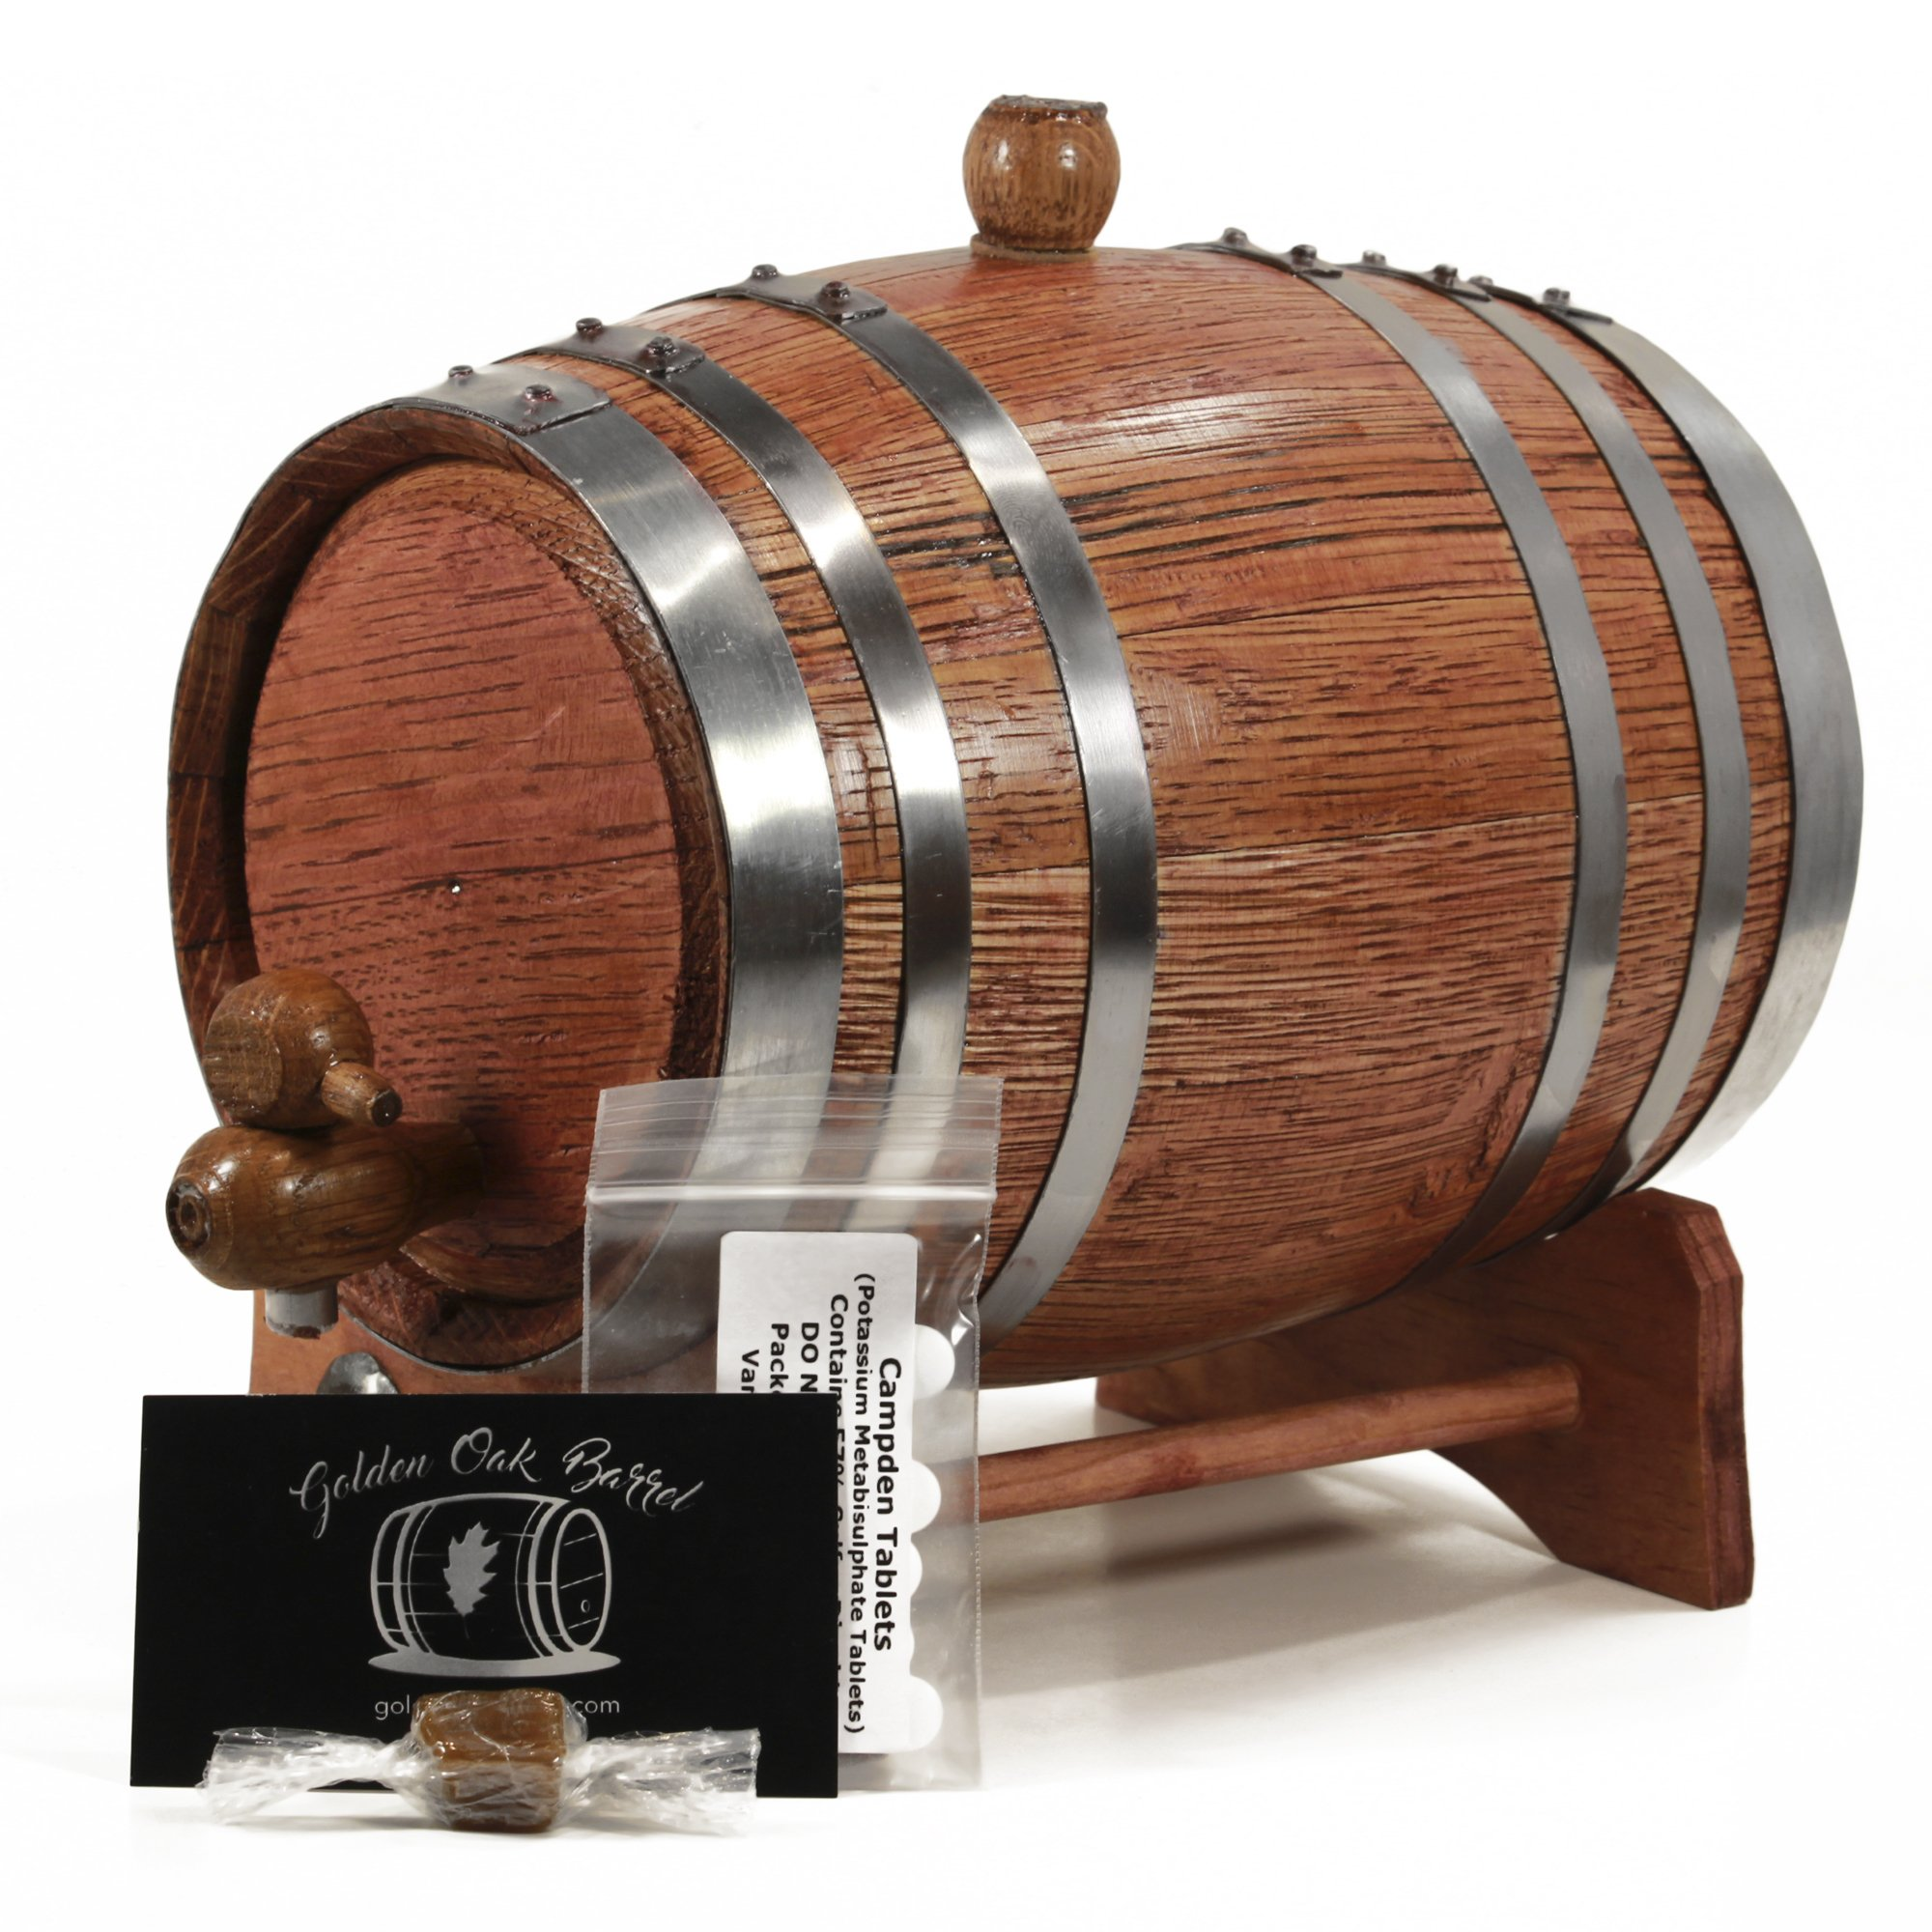 Handcrafted American Oak Aging Barrel | Age your own Whiskey, Bourbon, Tequila, More | Aging and Recipes Digital Guide included (CHERRY W/SILVER, 2 Liter)